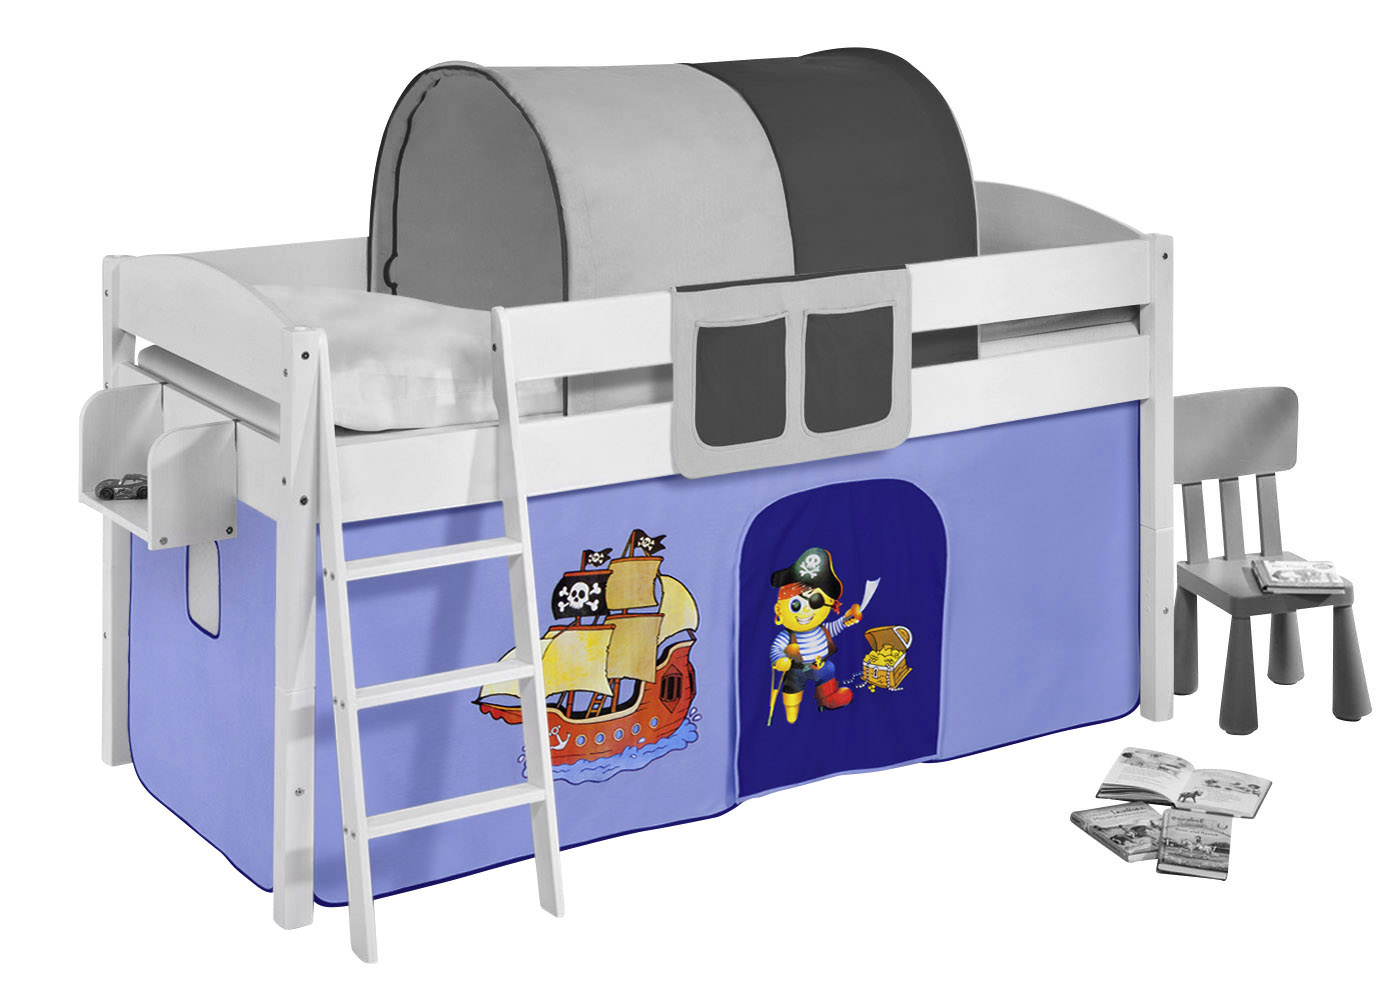 vorhang set f r kinder hochbetten spielbetten 2 teilig. Black Bedroom Furniture Sets. Home Design Ideas